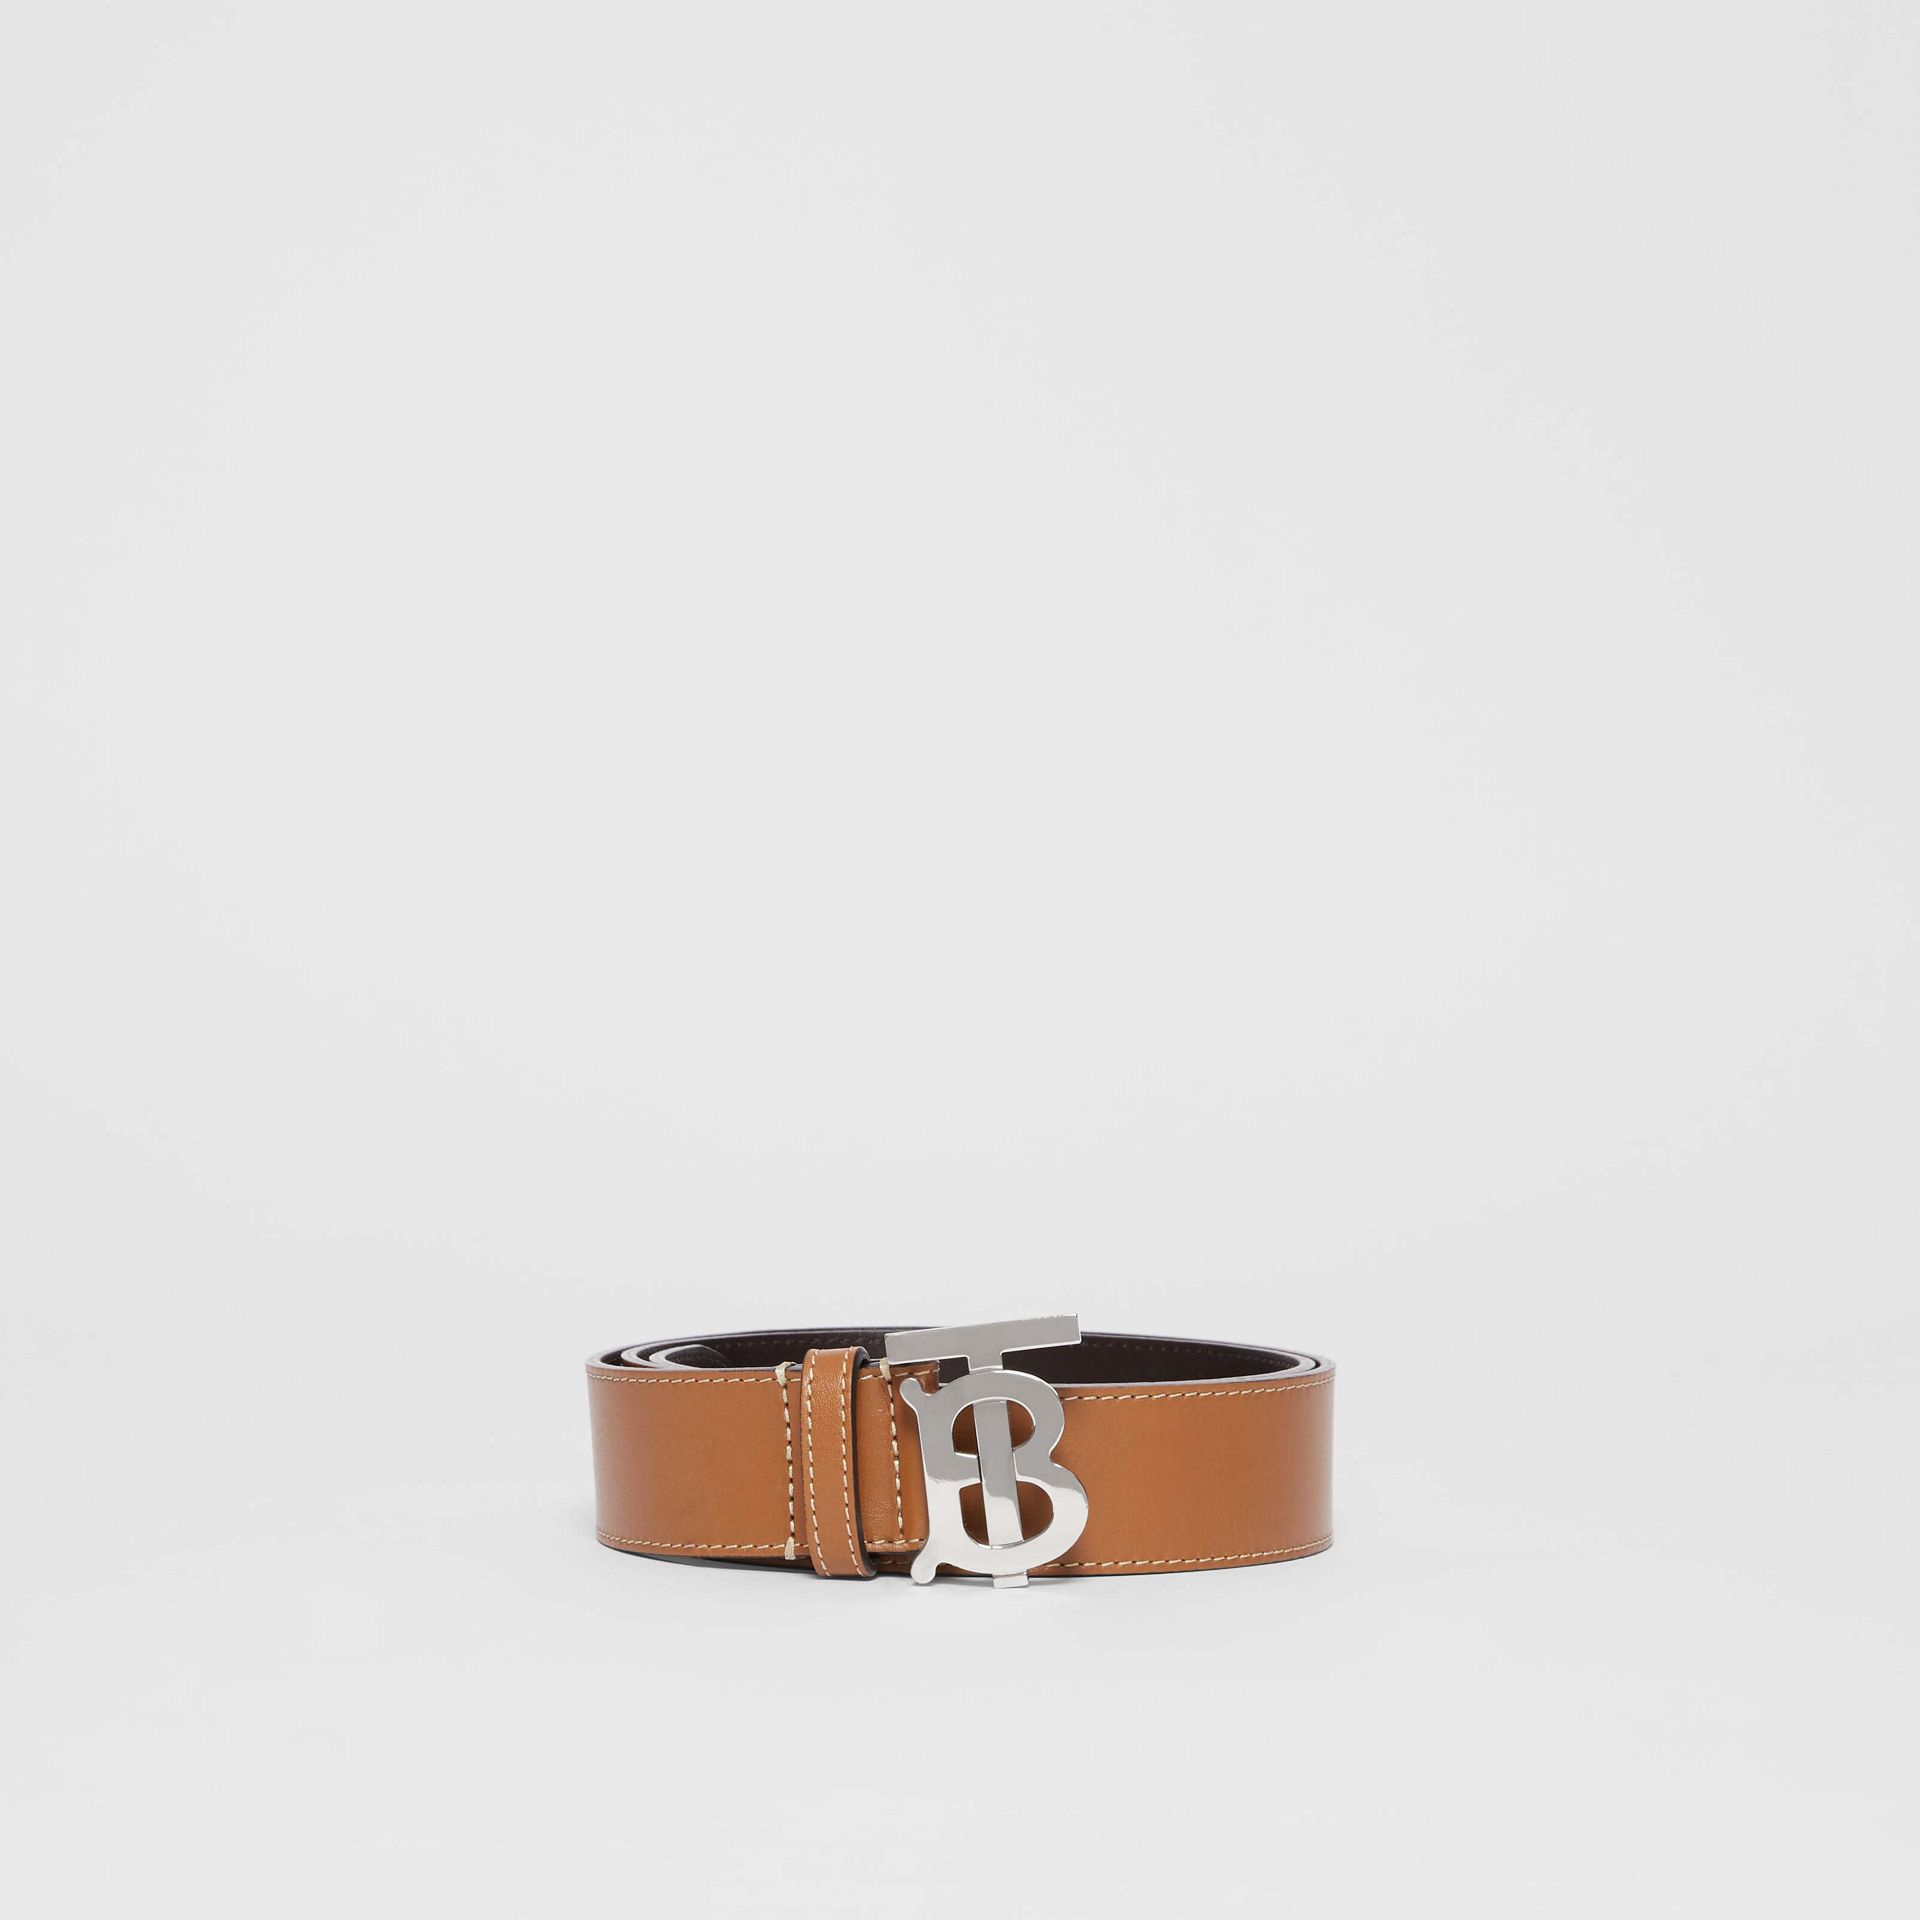 Monogram Motif Topstitched Leather Belt in Tan - Men | Burberry - gallery image 3